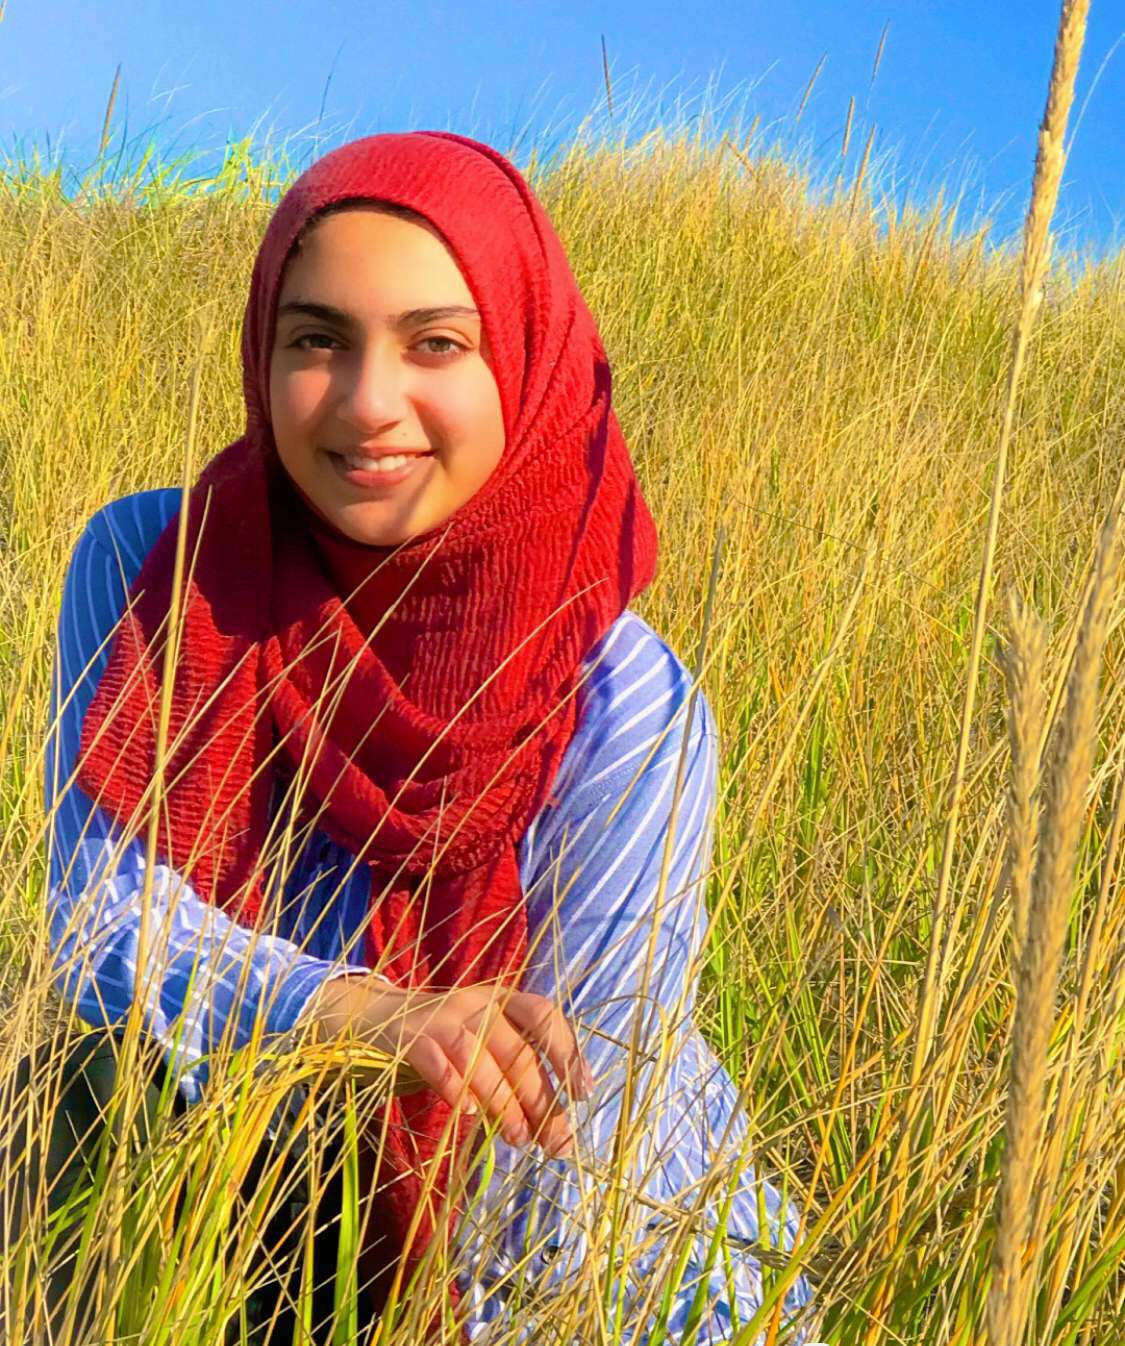 Rodayna Abdelhalim, student at Wilsonville High School. She is a junior this year taking 6 AP classes.